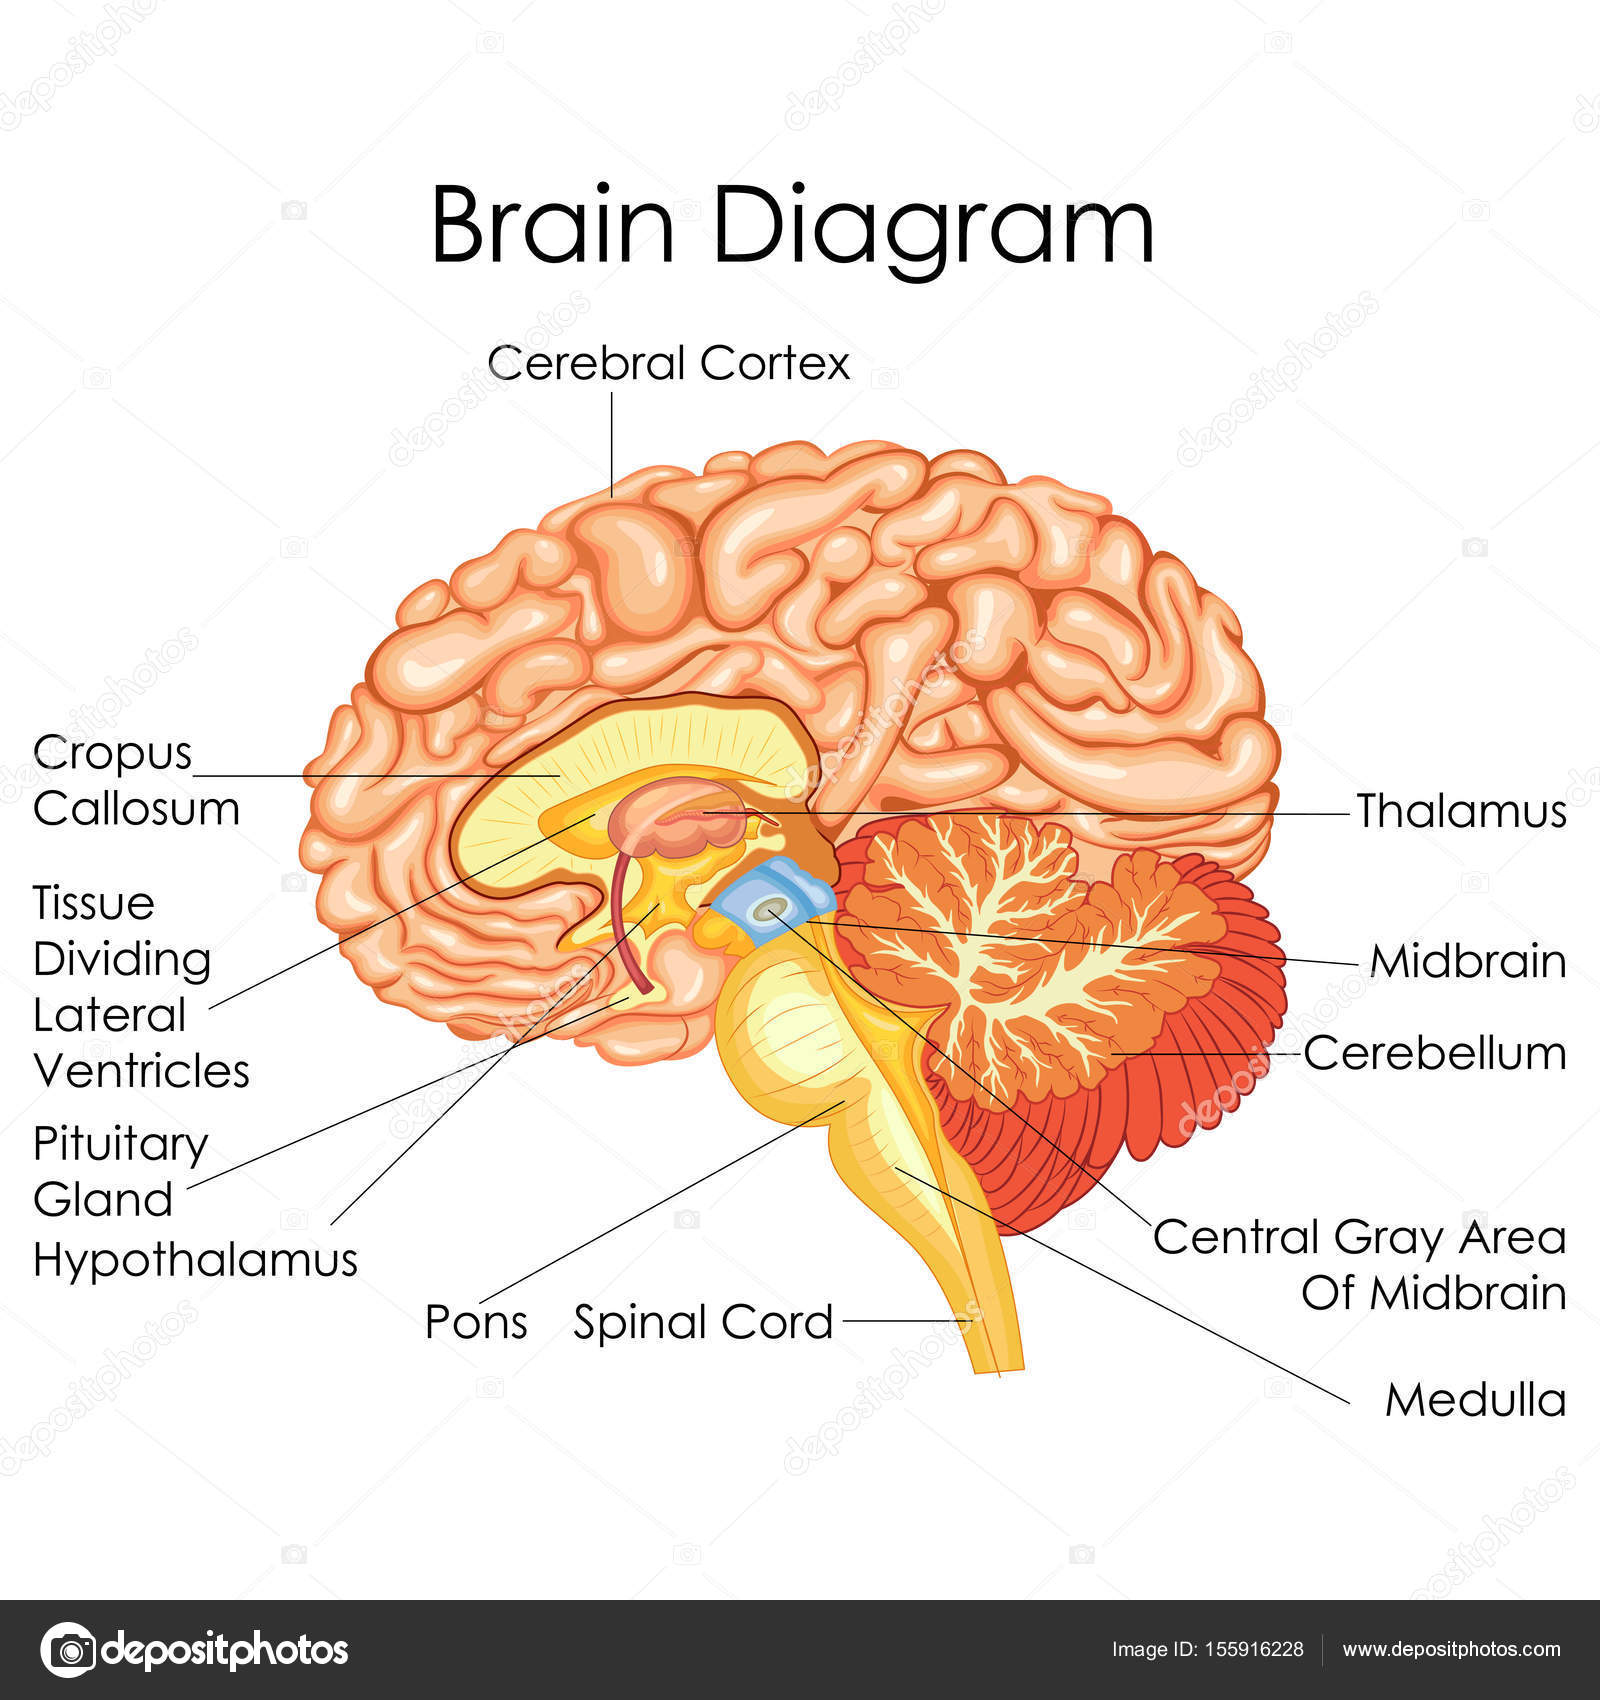 Human Brain Diagram With Cerebrum - DIY Enthusiasts Wiring Diagrams •